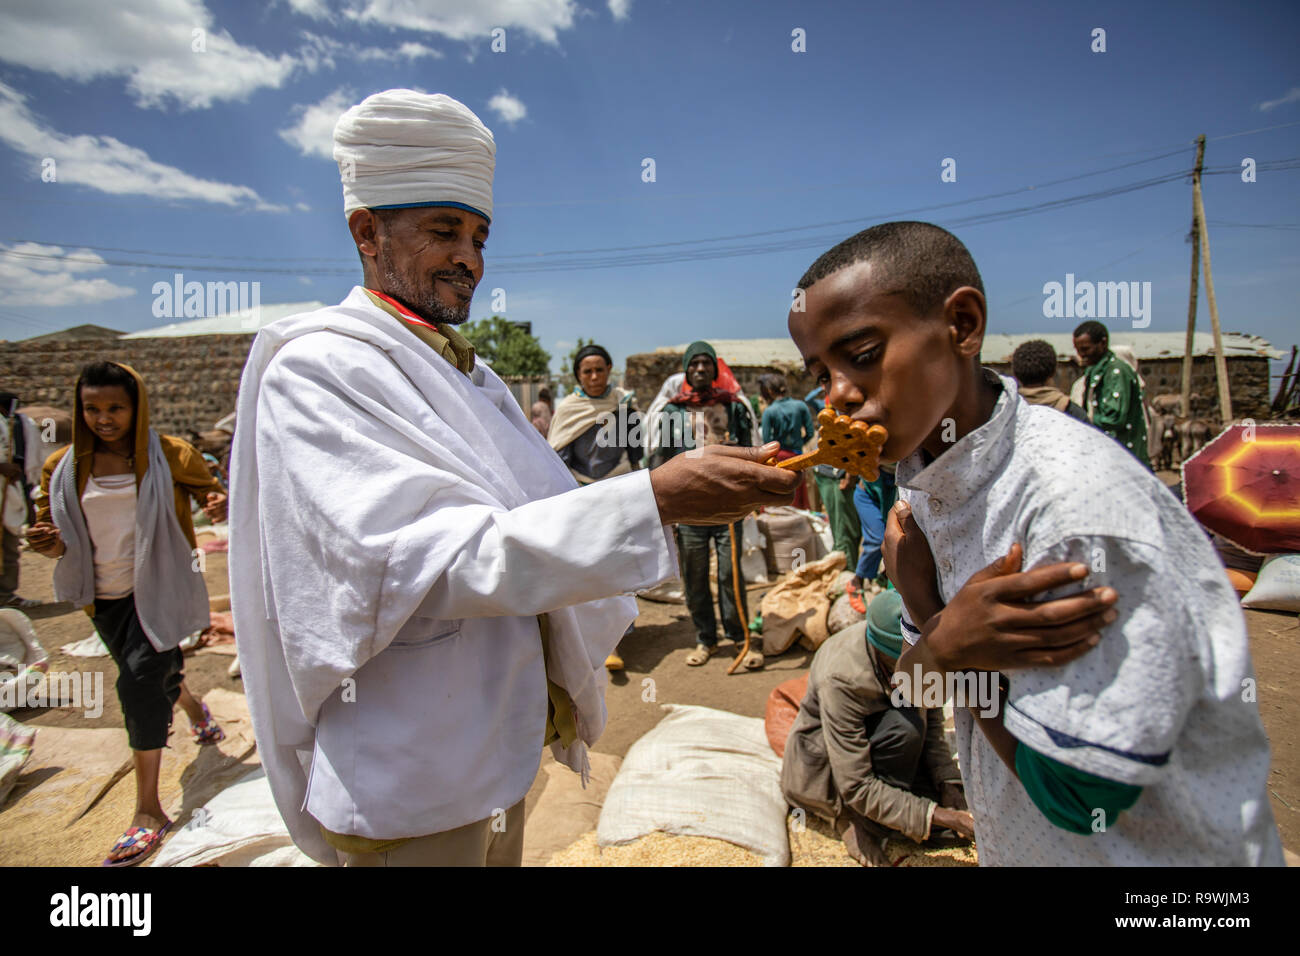 Priest giving blessing at the Lalibela market, Ethiopia - Stock Image